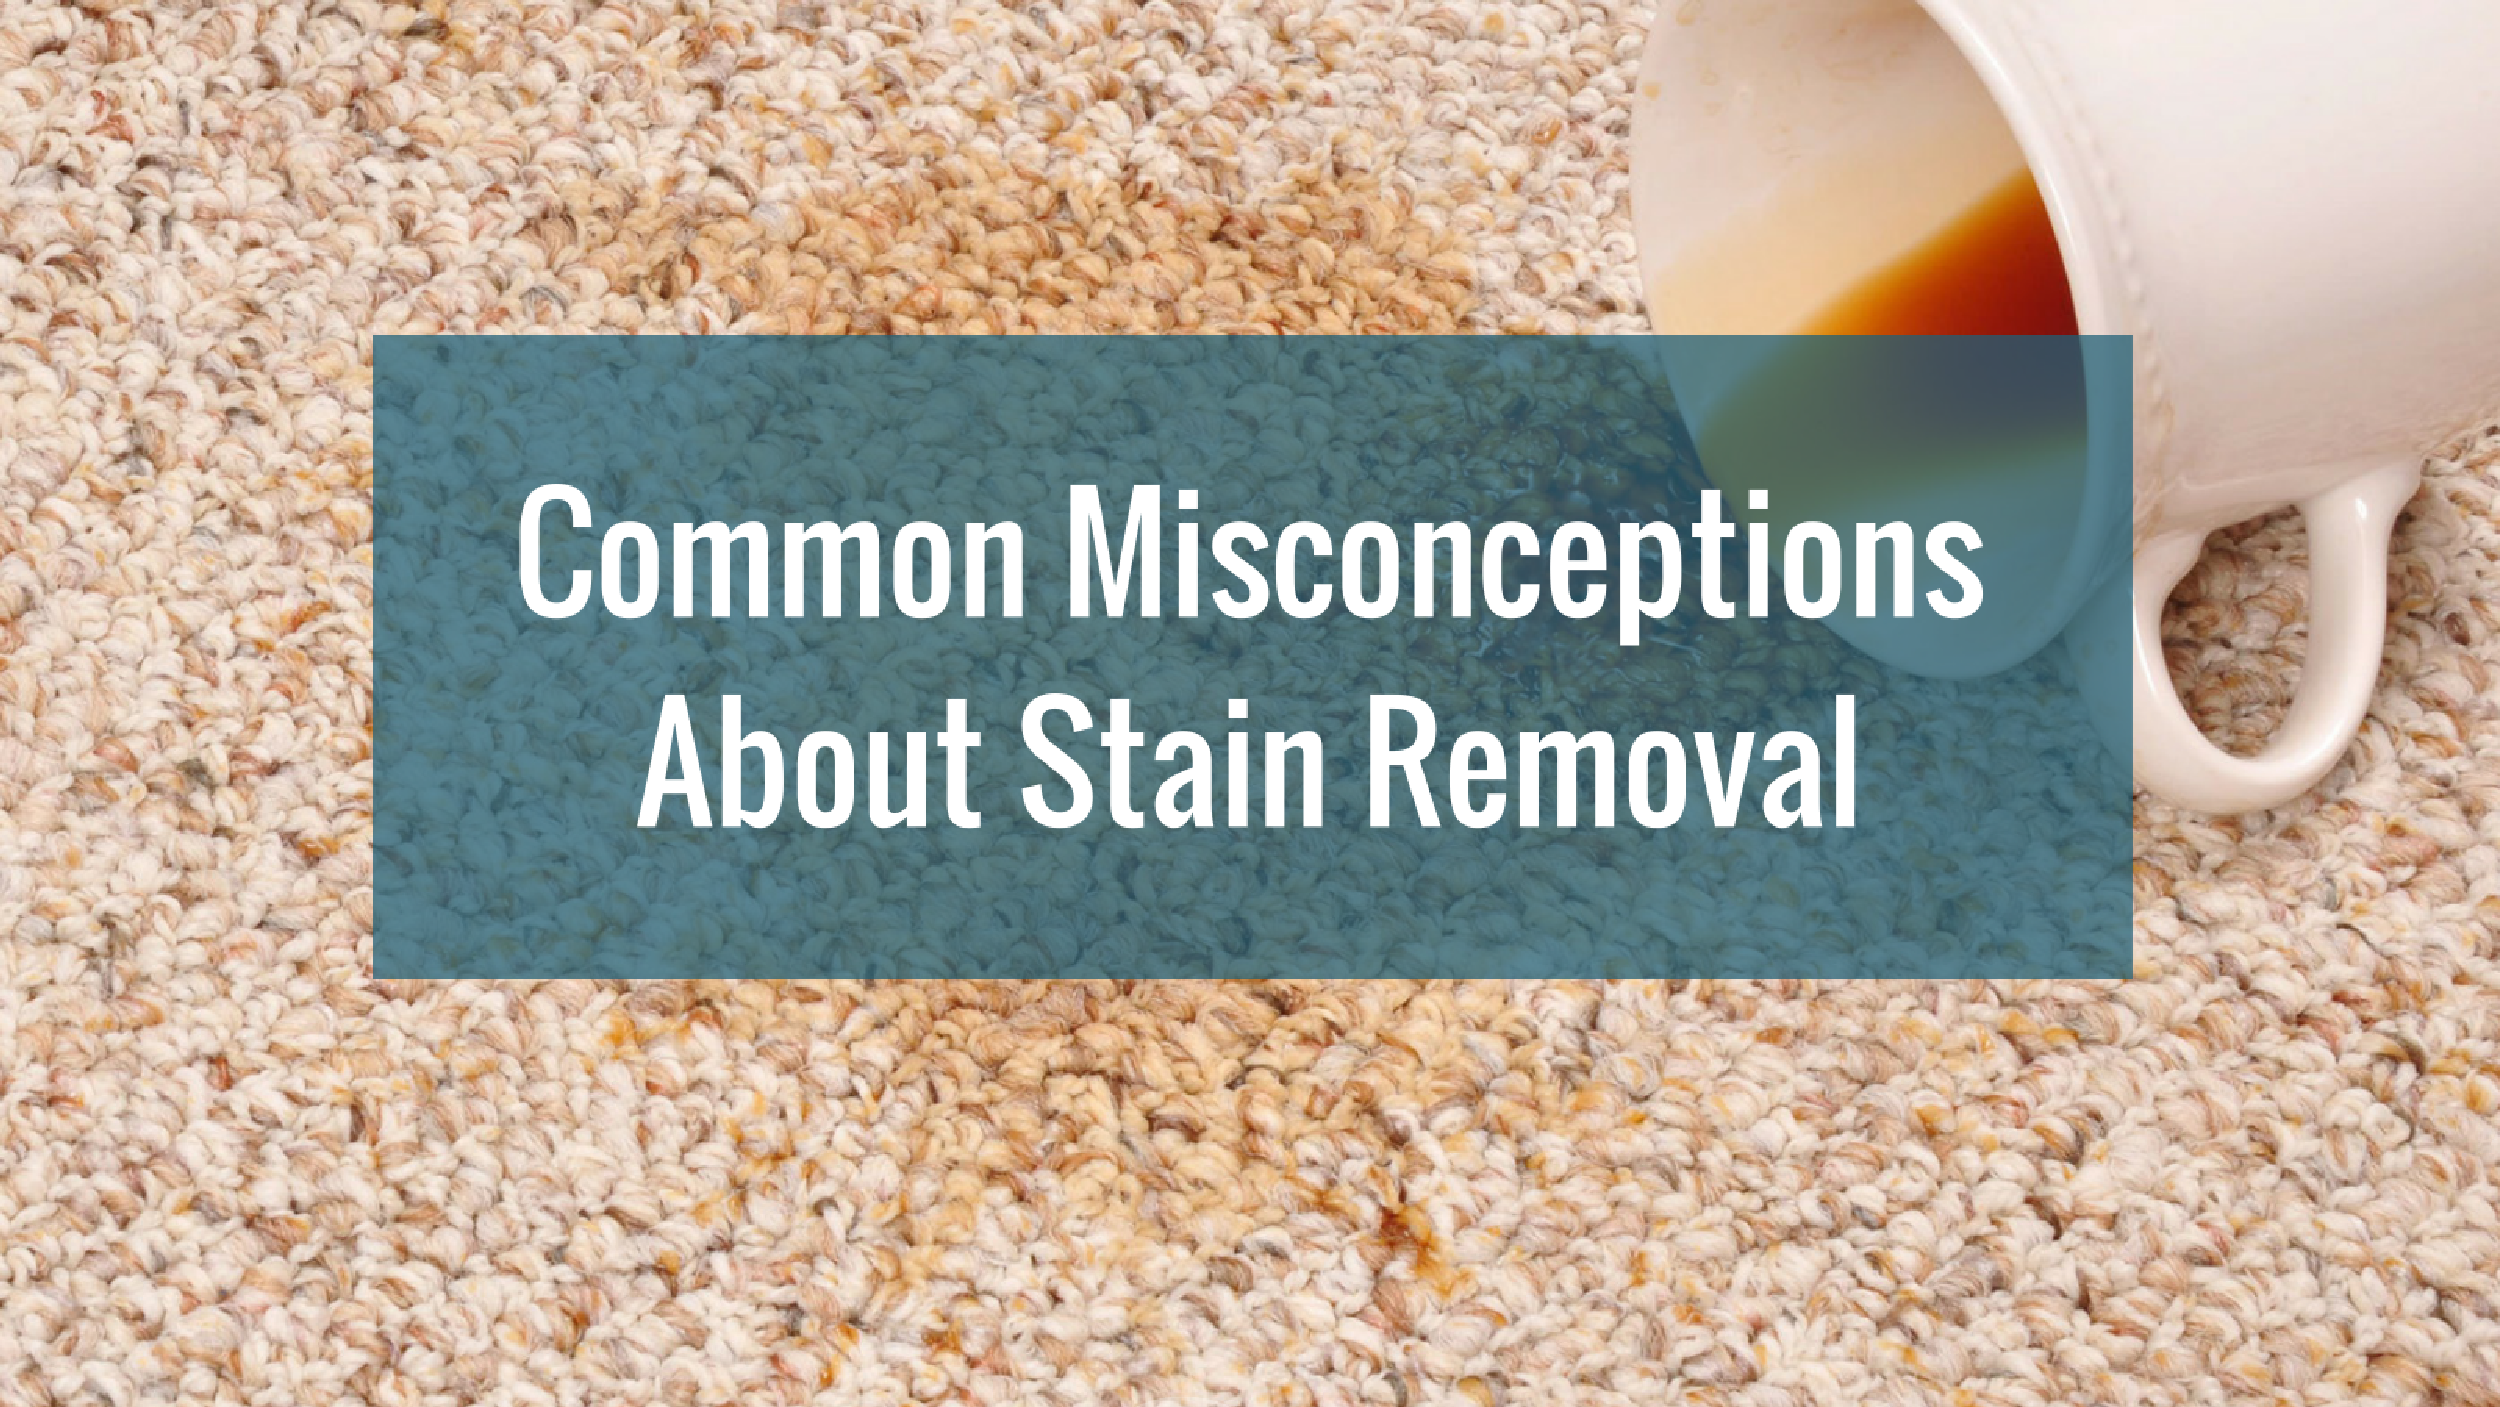 14 Common Misconceptions About Stain Removal